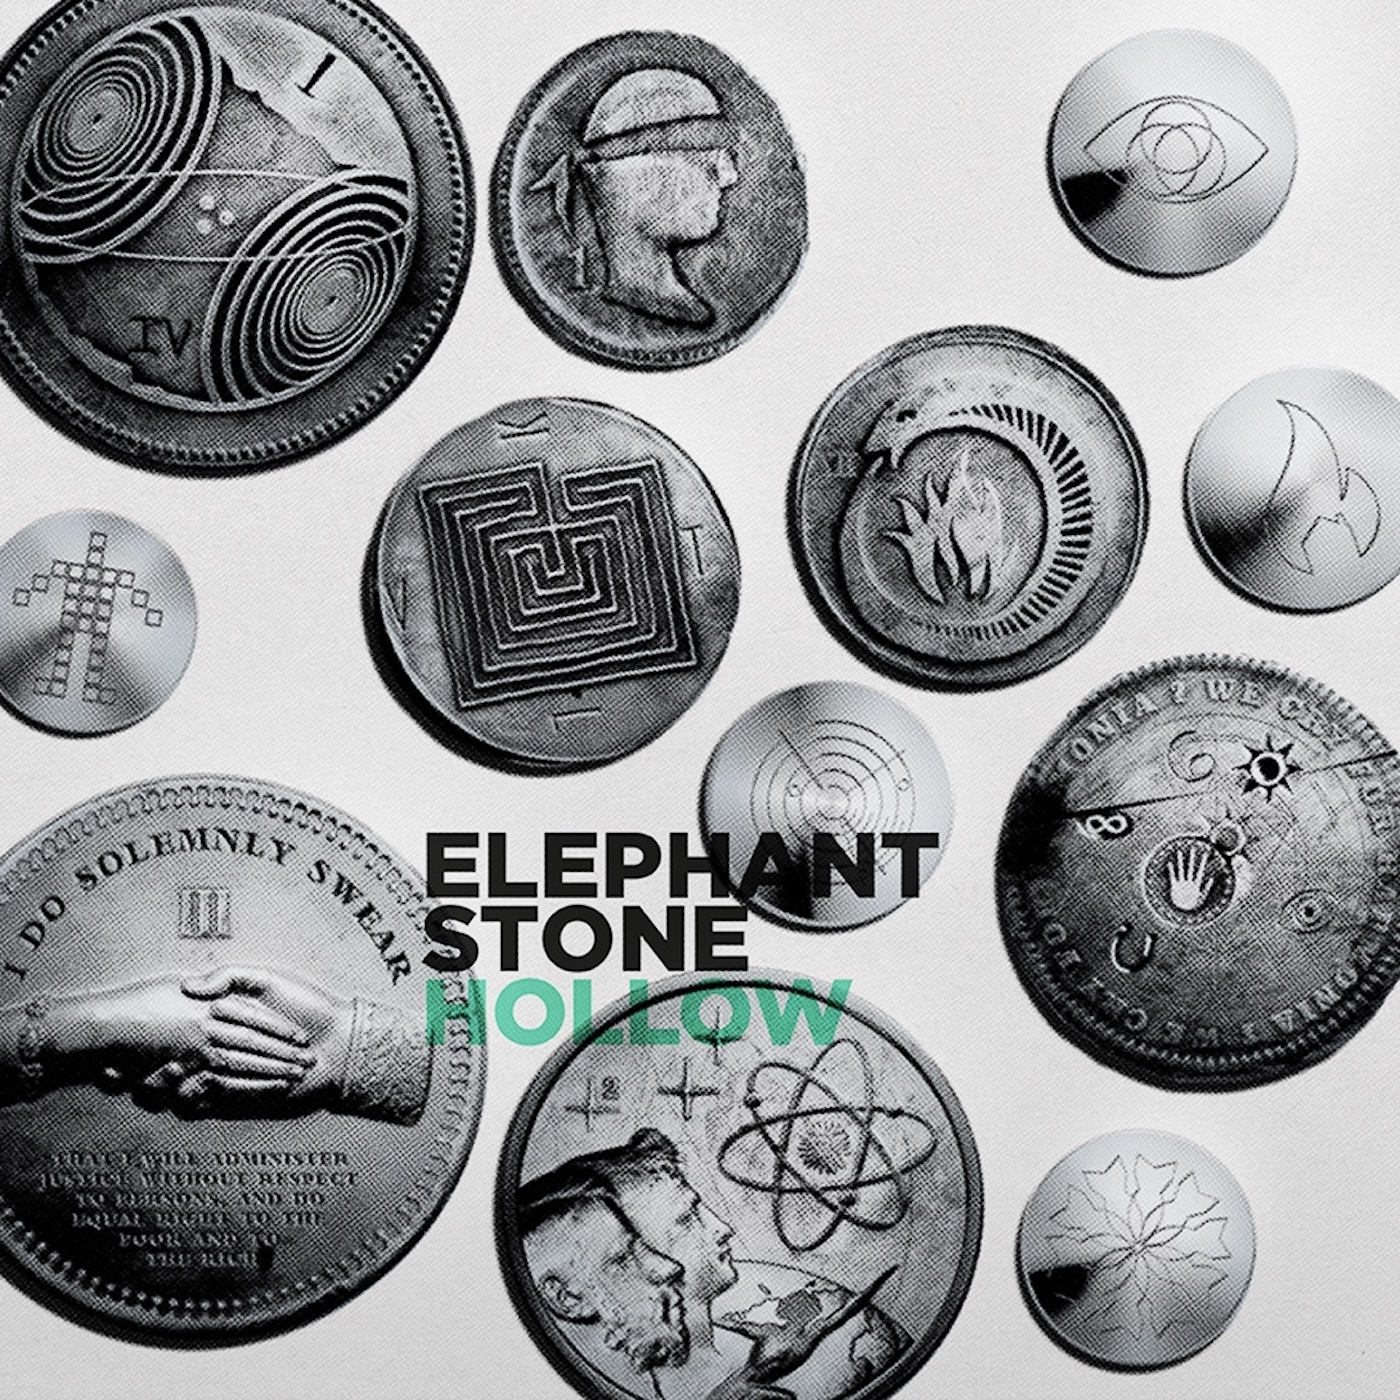 Elephant Stone – Hollow